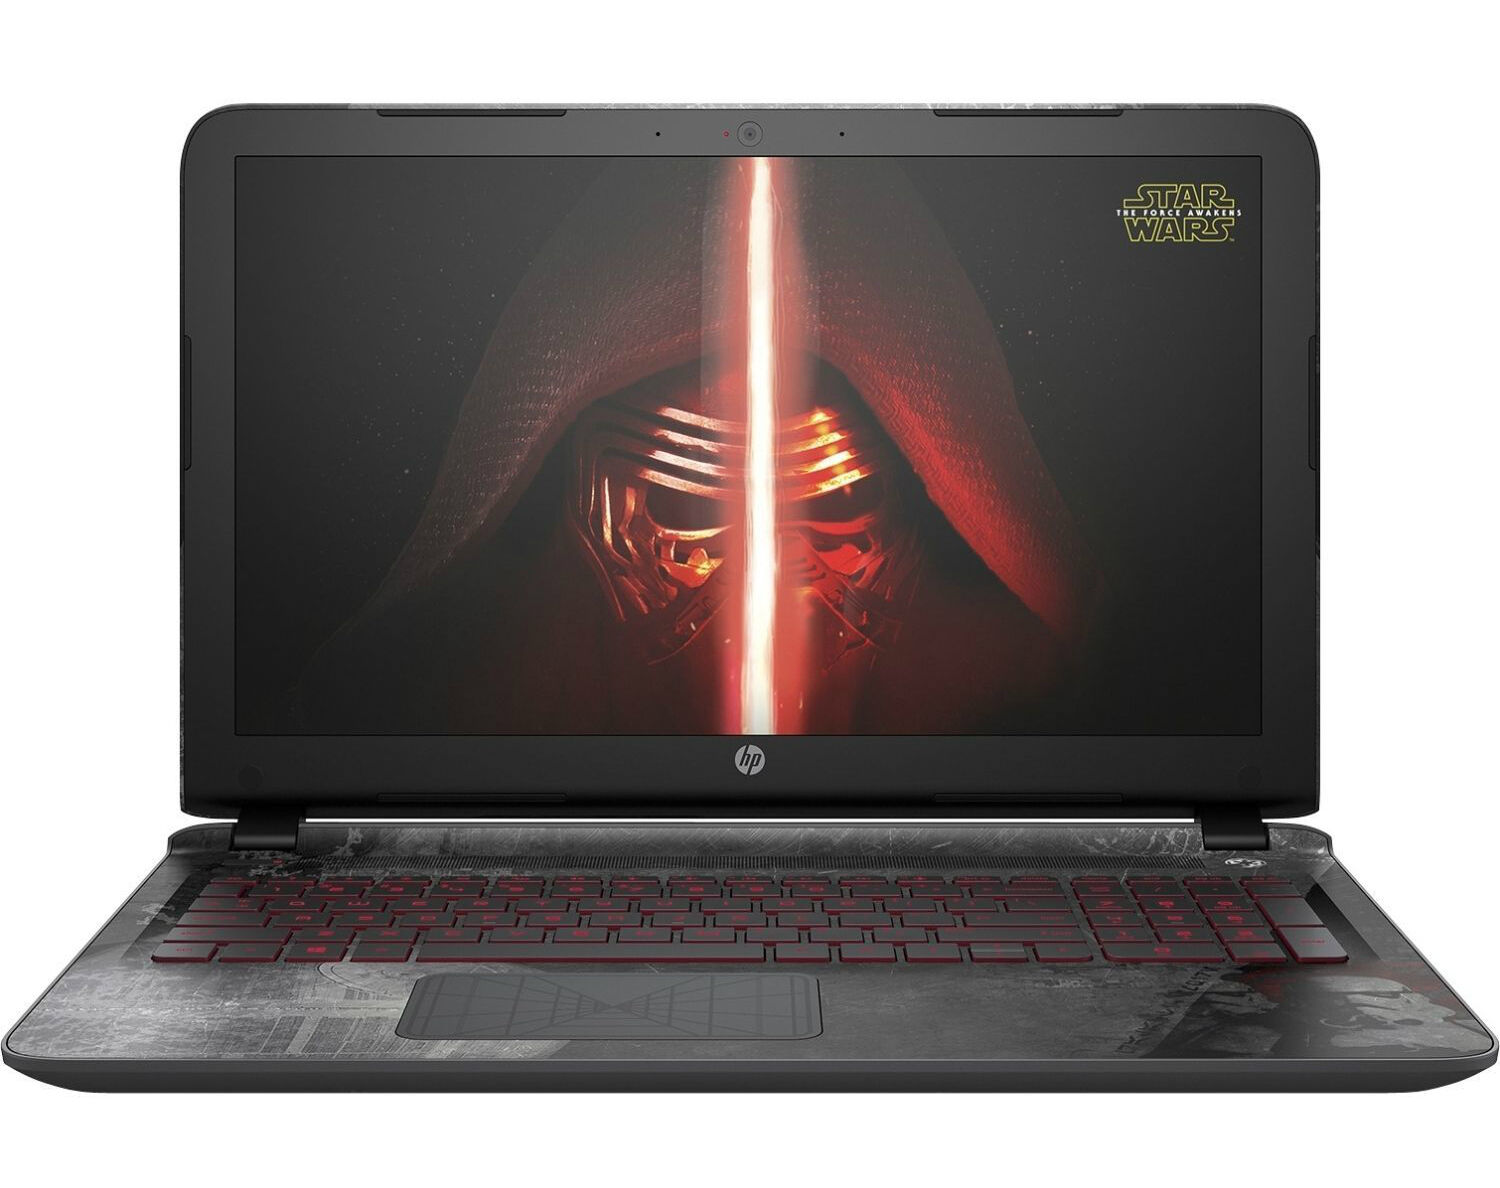 HP Star Wars Special Edition 15.6 Notebook